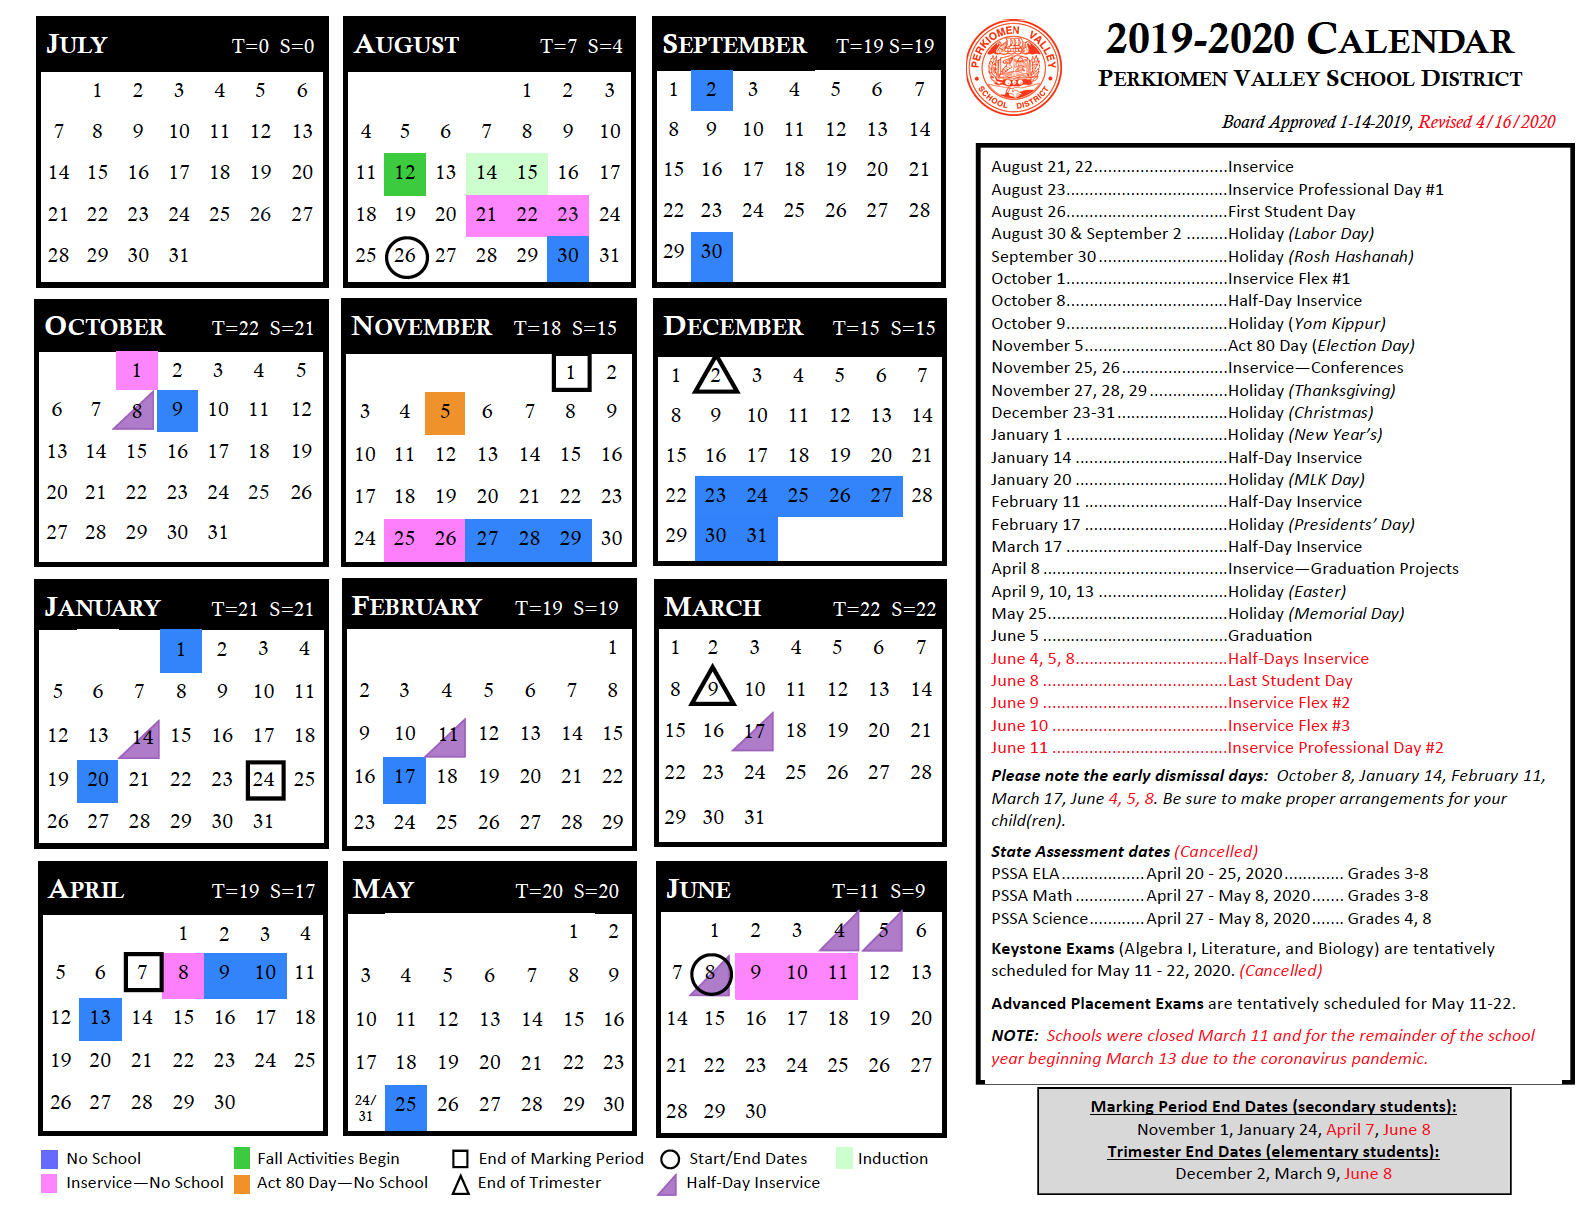 Instructional Calendar - Perkiomen Valley School District Regarding East Allen County Schools Calendar